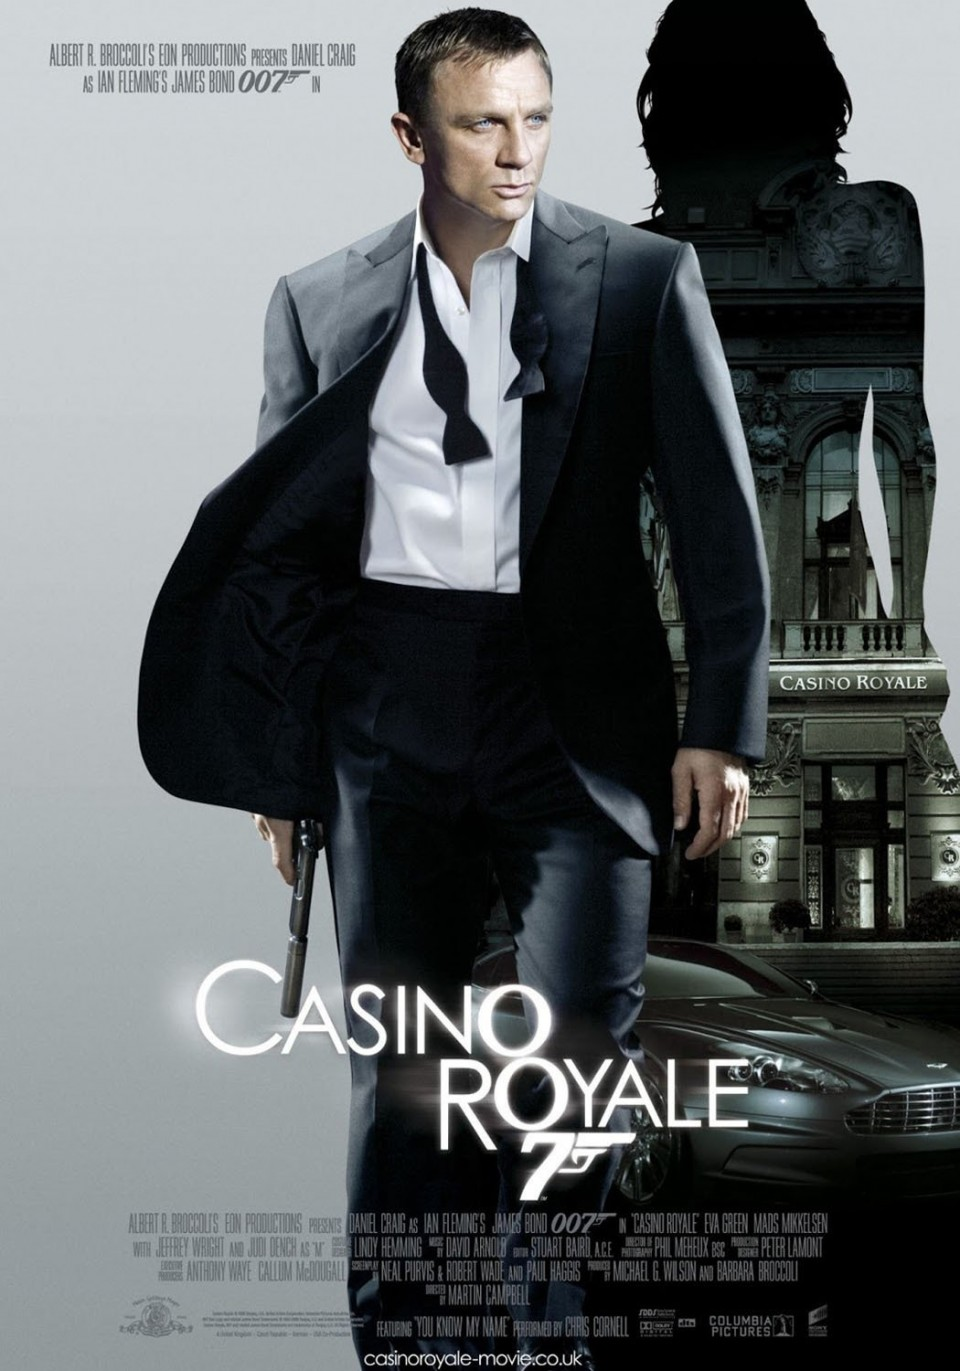 Casinò Royale